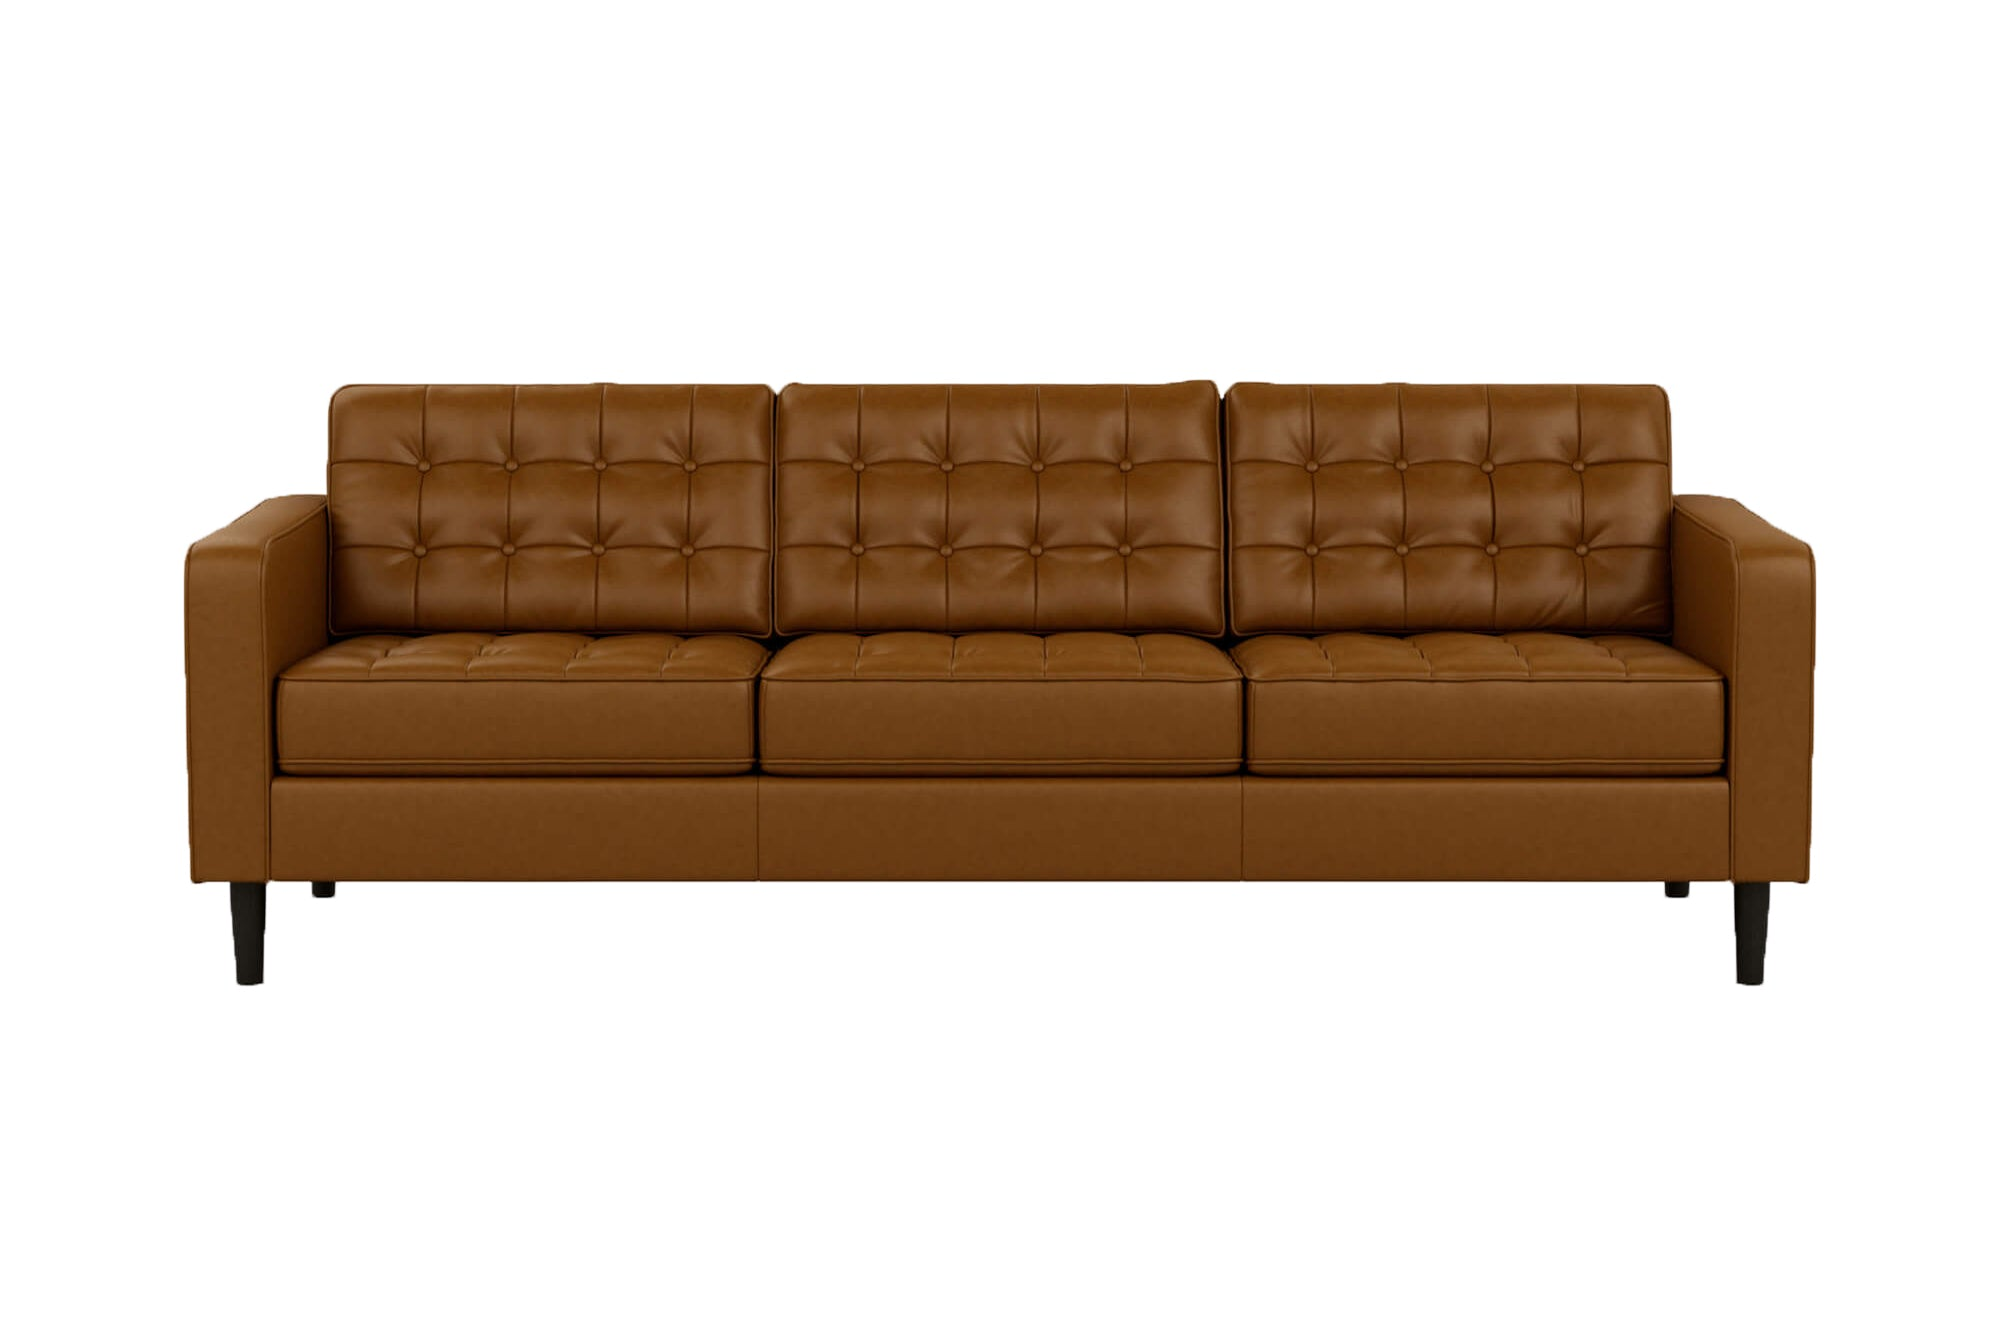 Reverie 3 Seat Leather Sofa - Quick Ship